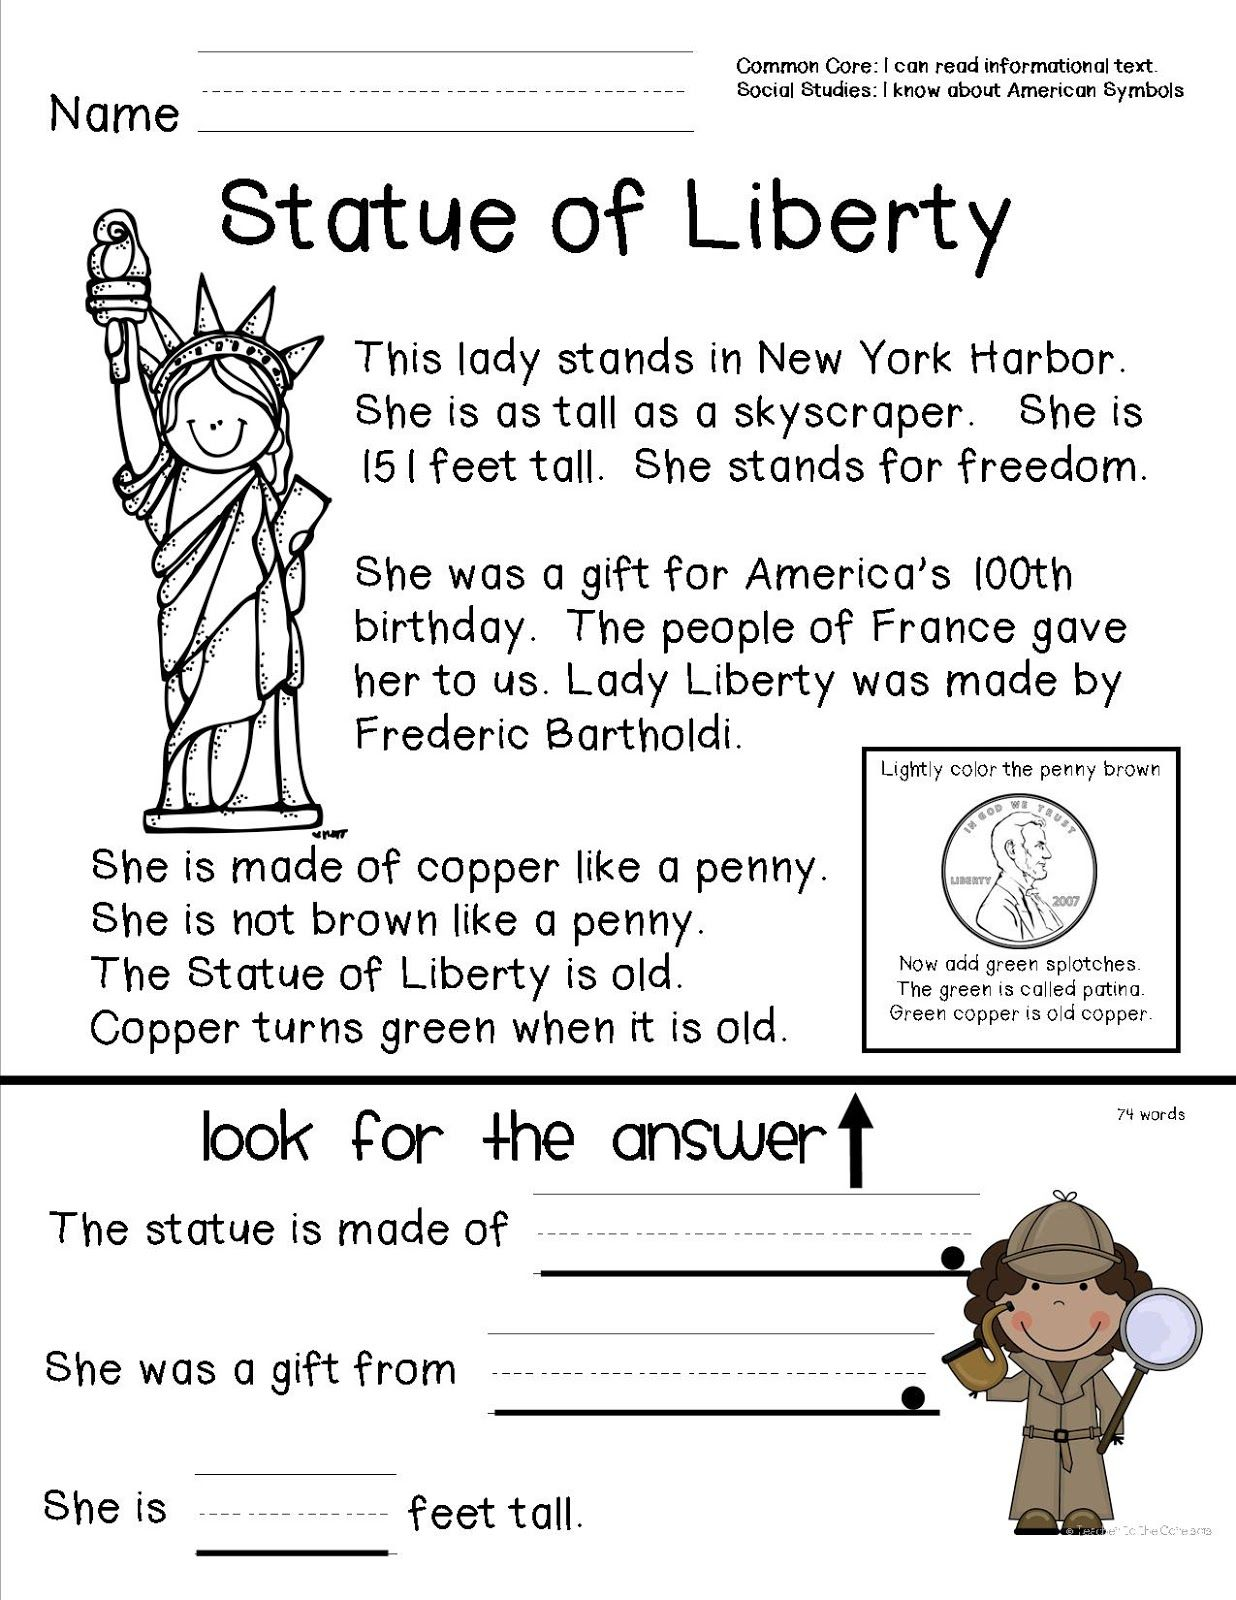 worksheet Social Studies Worksheets 3rd Grade second grade math worksheets my neighborhood map maps reading comprehension sheet about the statue of liberty for primary grades